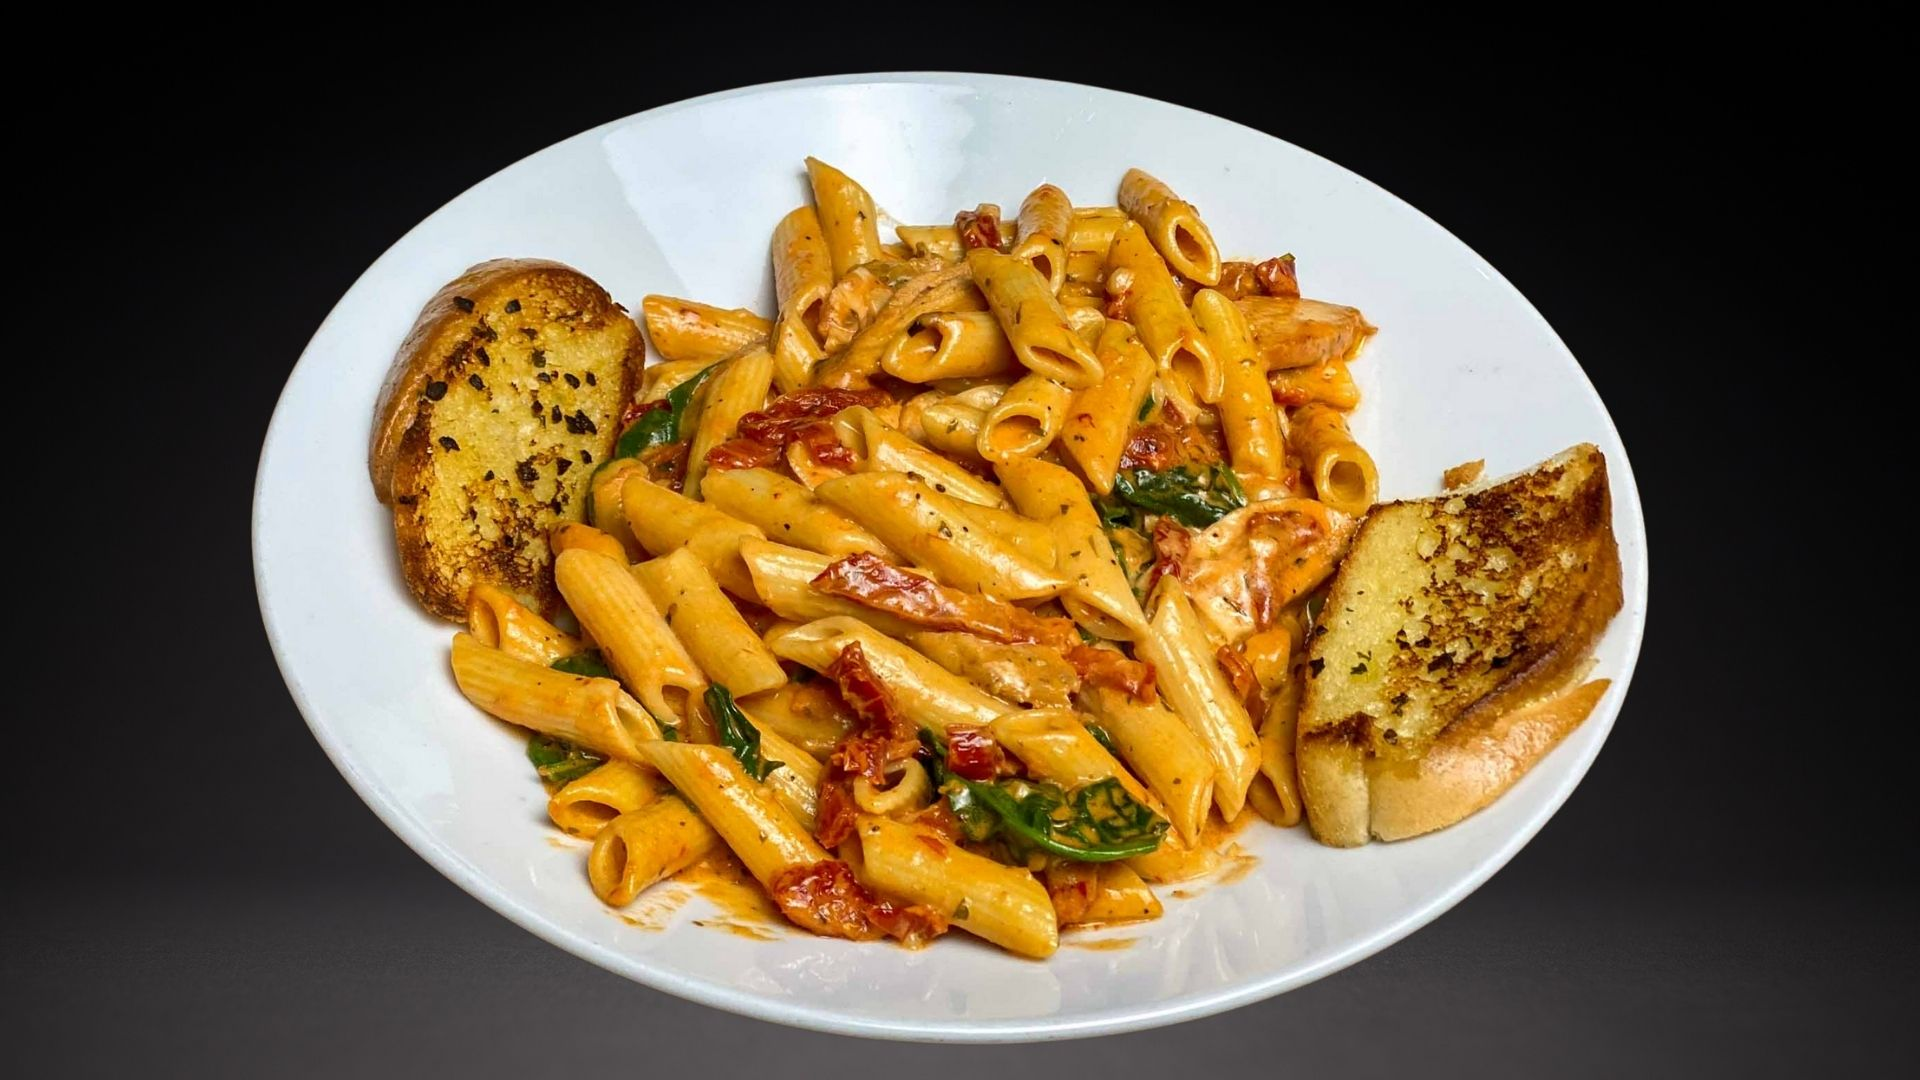 Pier53 - Sundried Tomato Spinach Penne